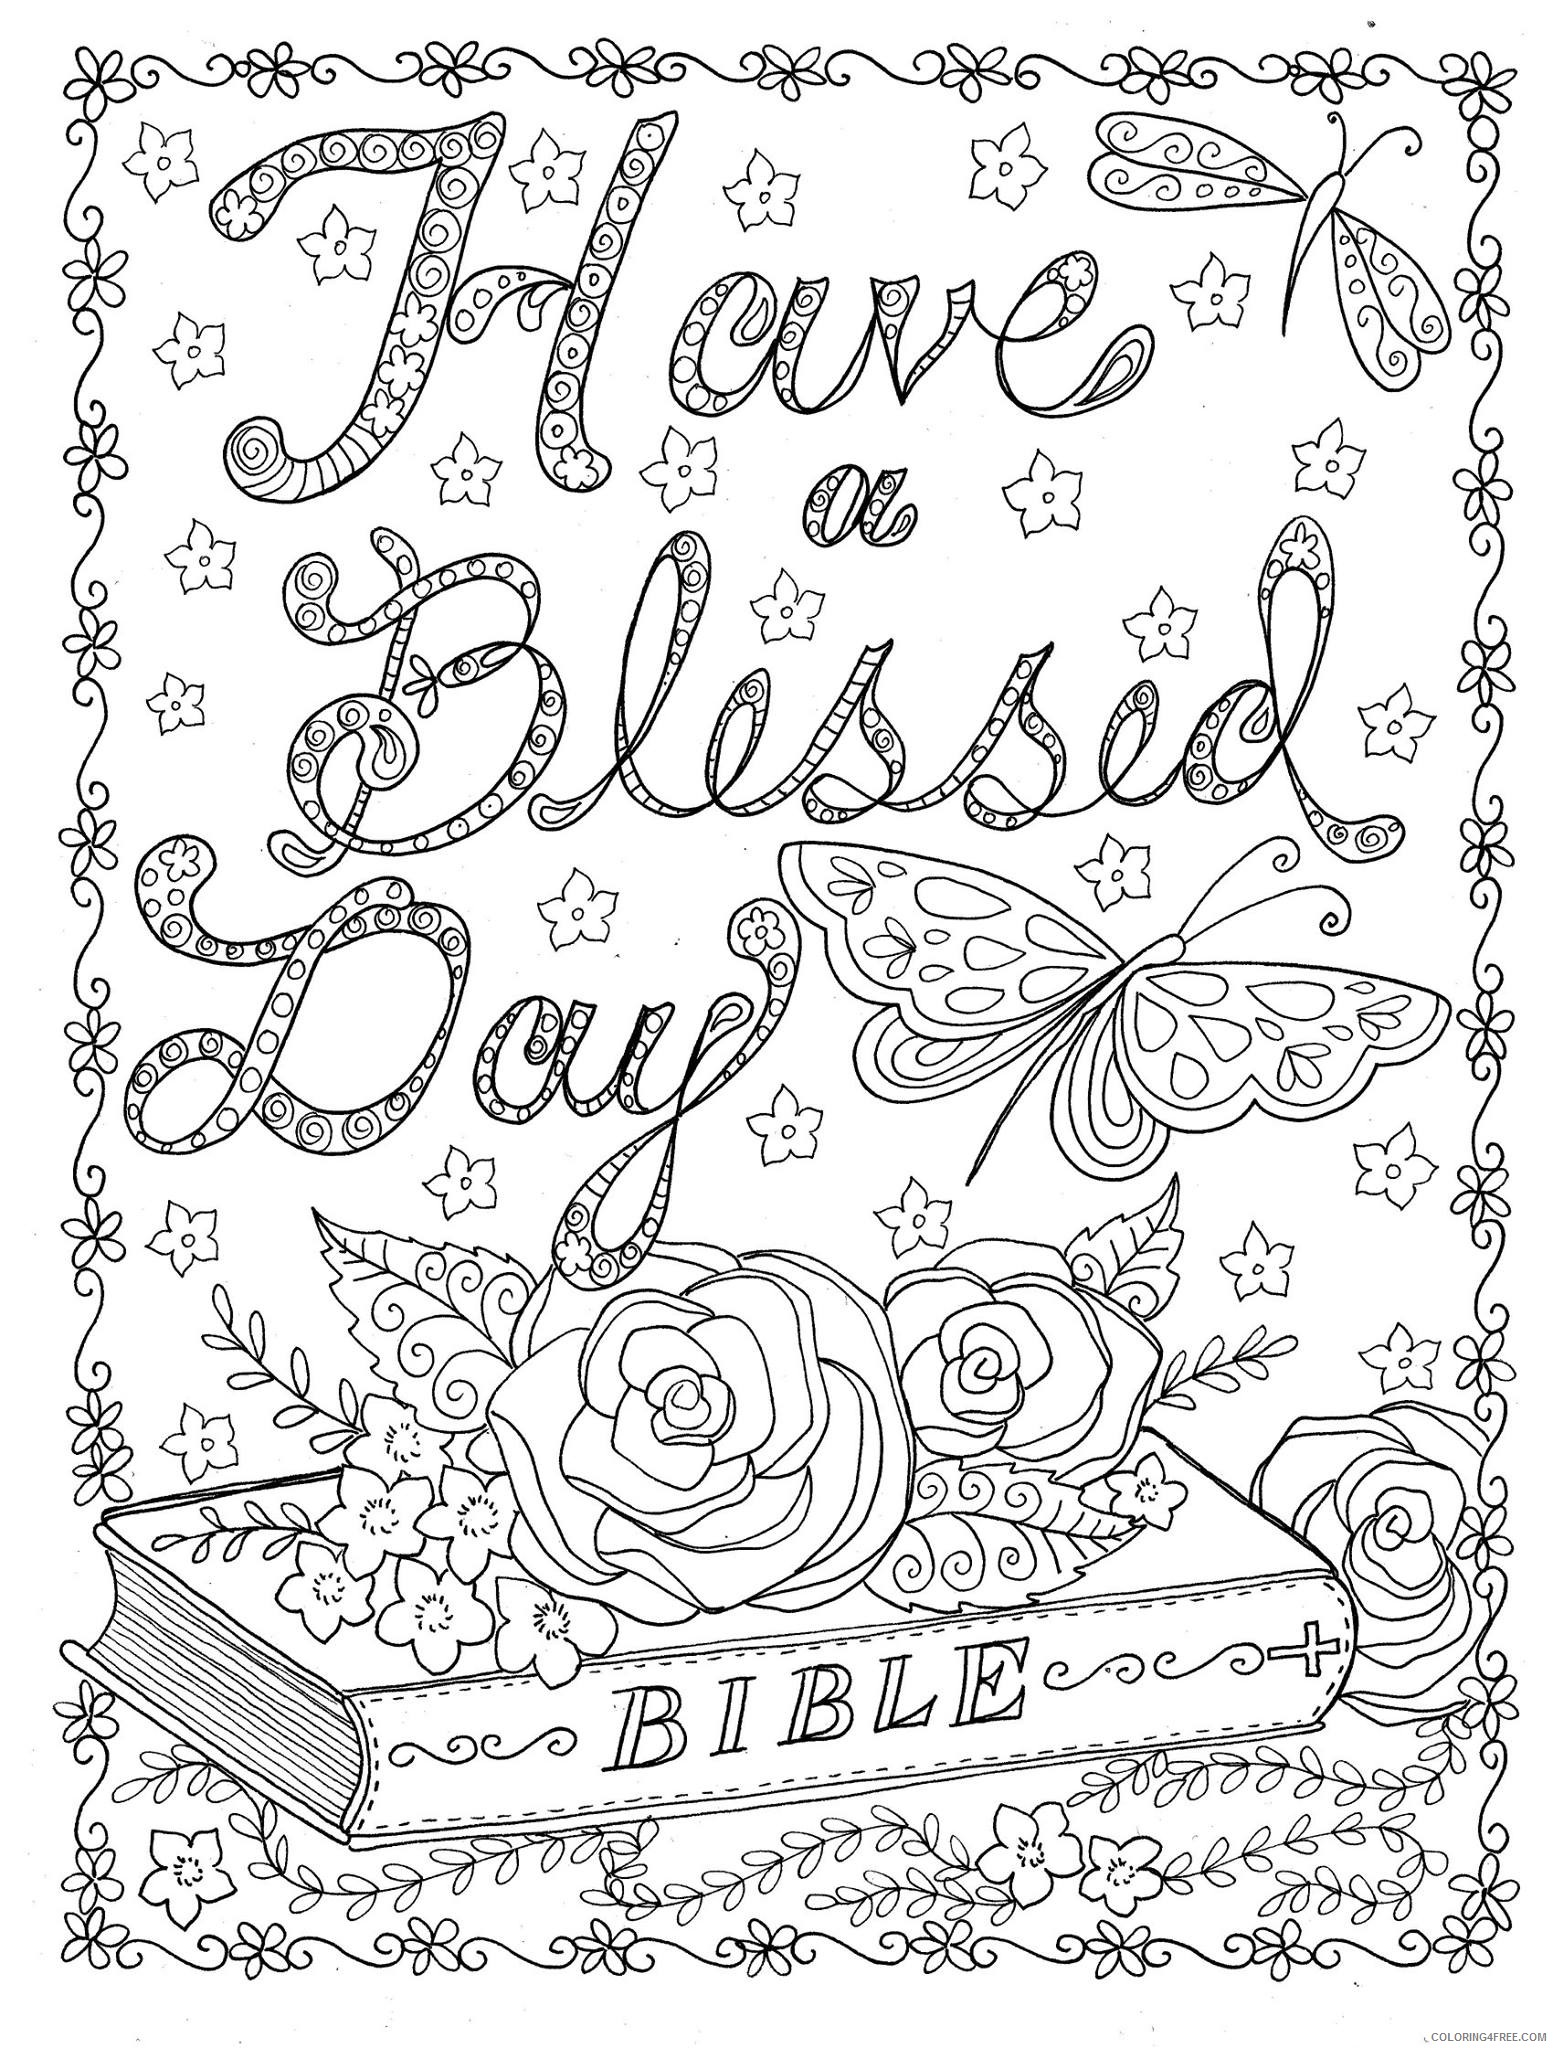 complex coloring pages bible Coloring4free